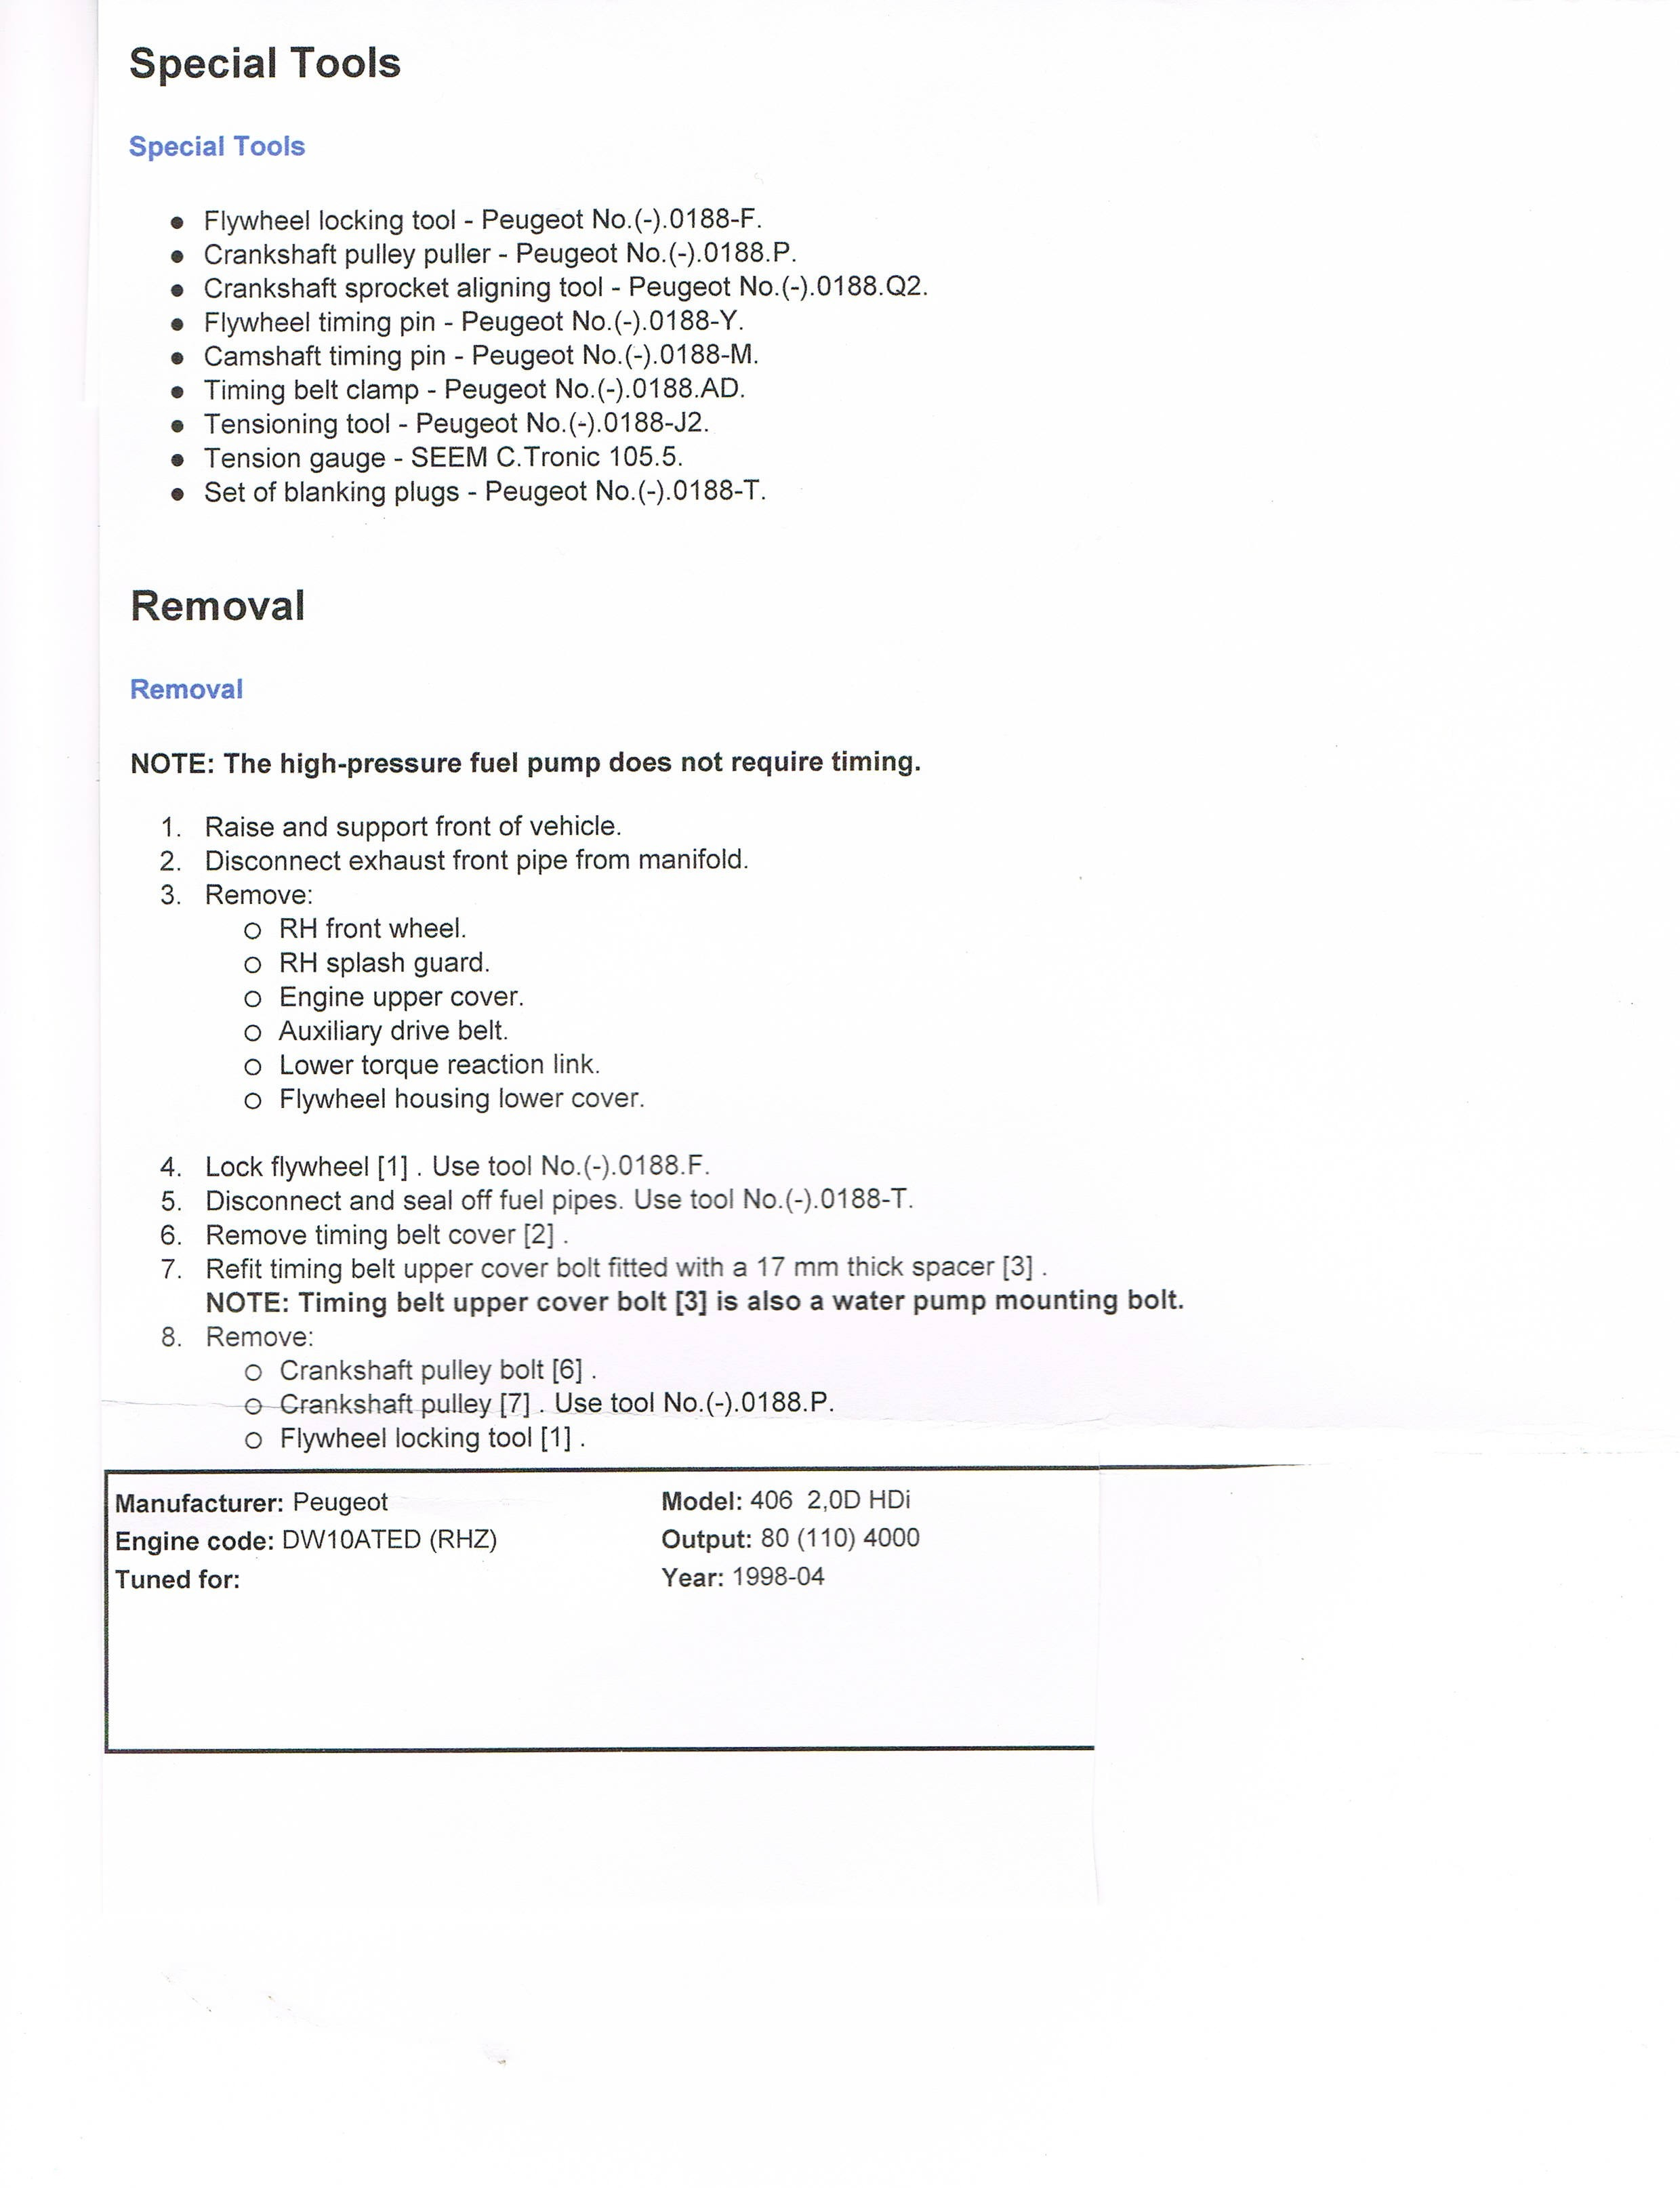 Free Past Due Letter Template - Past Due Letter Template New Free soap Note Template Lovely Resume